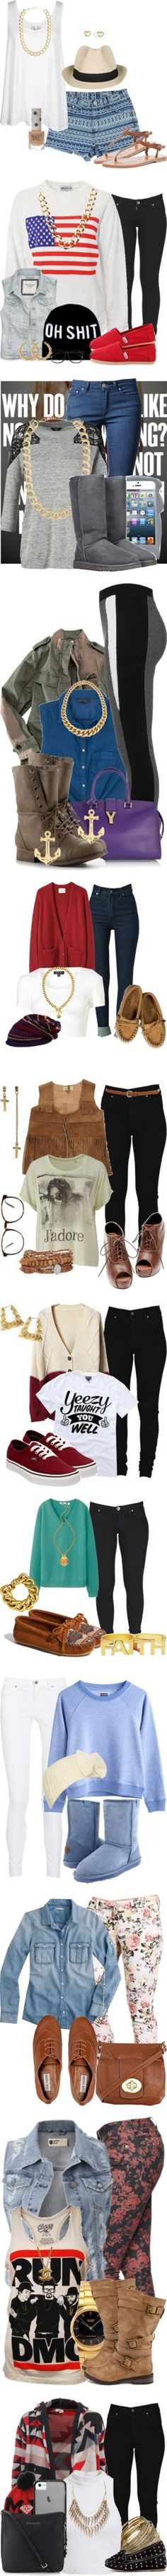 """""""Girly Too Girly Part 1"""" by mrkr-lawson ❤ liked on Polyvore"""